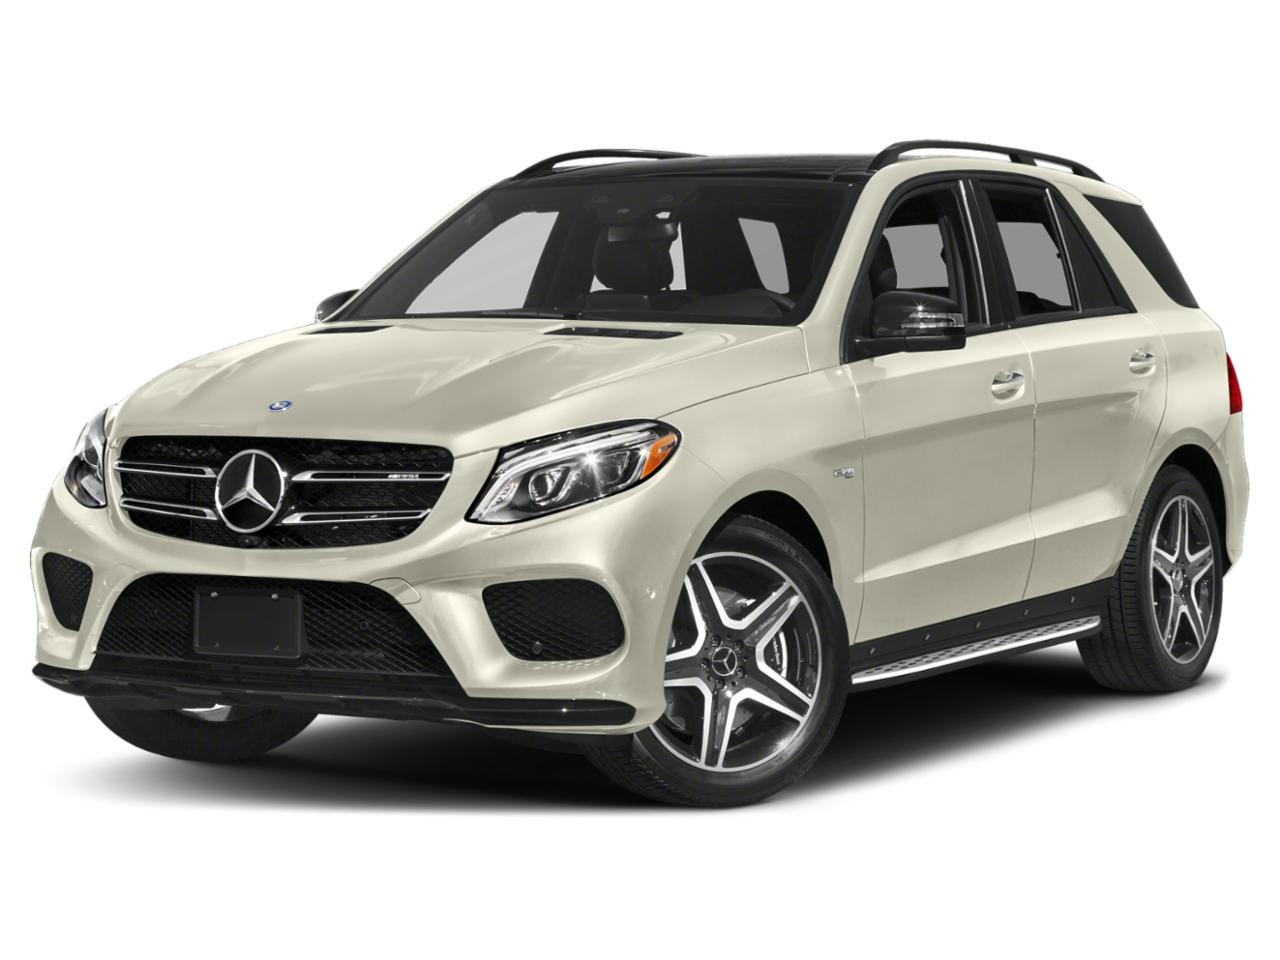 2018 Mercedes-Benz GLE Vehicle Photo in Flemington, NJ 08822